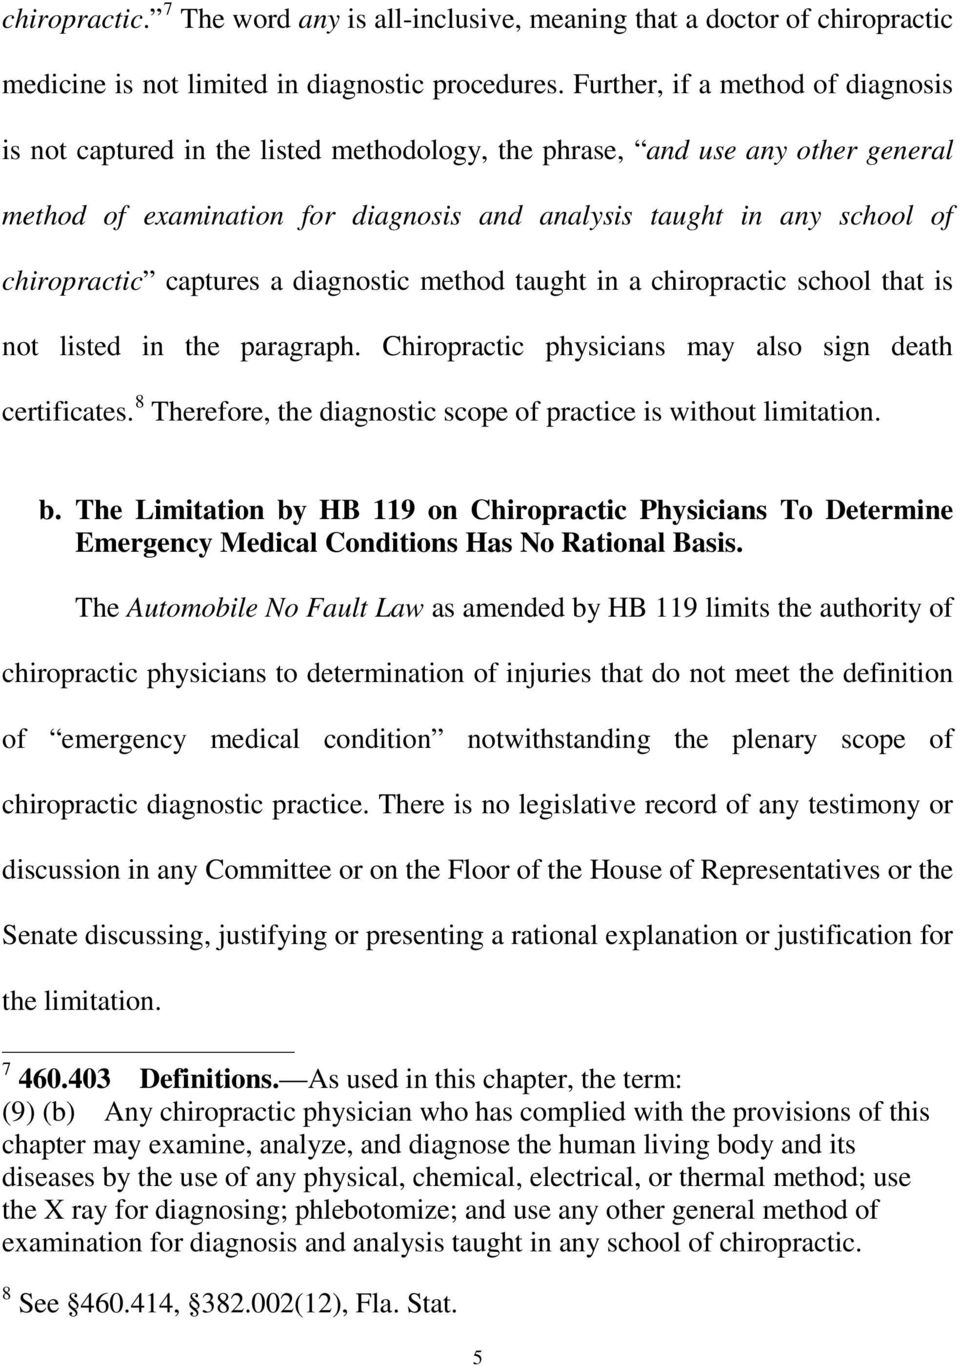 chiropractic captures a diagnostic method taught in a chiropractic school that is not listed in the paragraph. Chiropractic physicians may also sign death certificates.